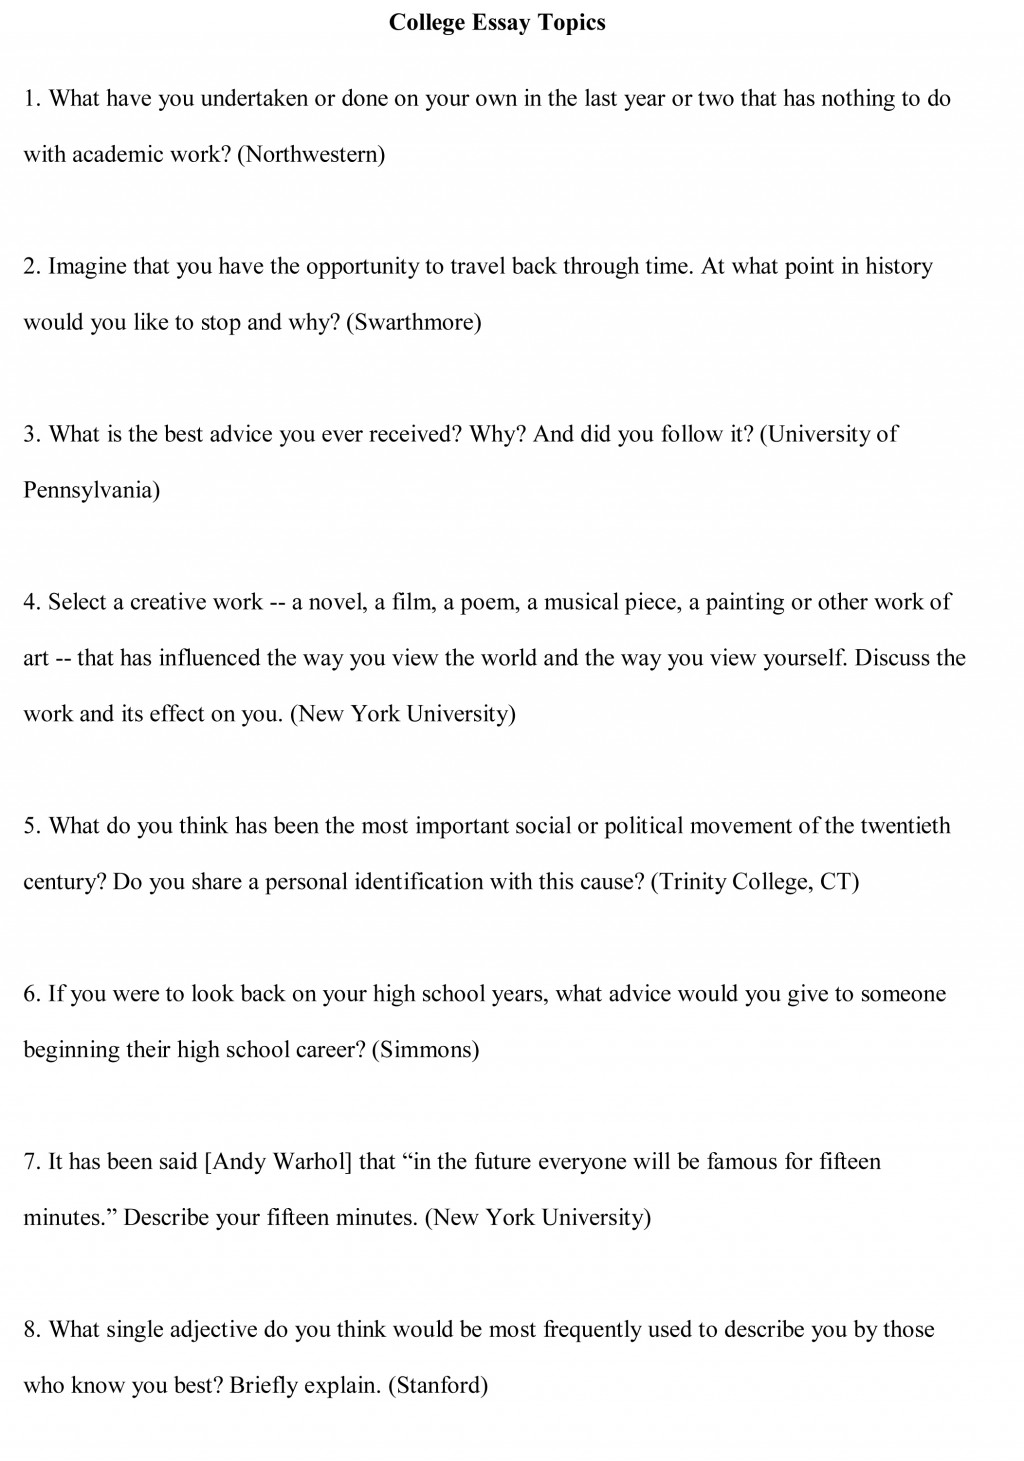 008 Research Paper Great Topics For College Essay Free Astounding History Students Level Large